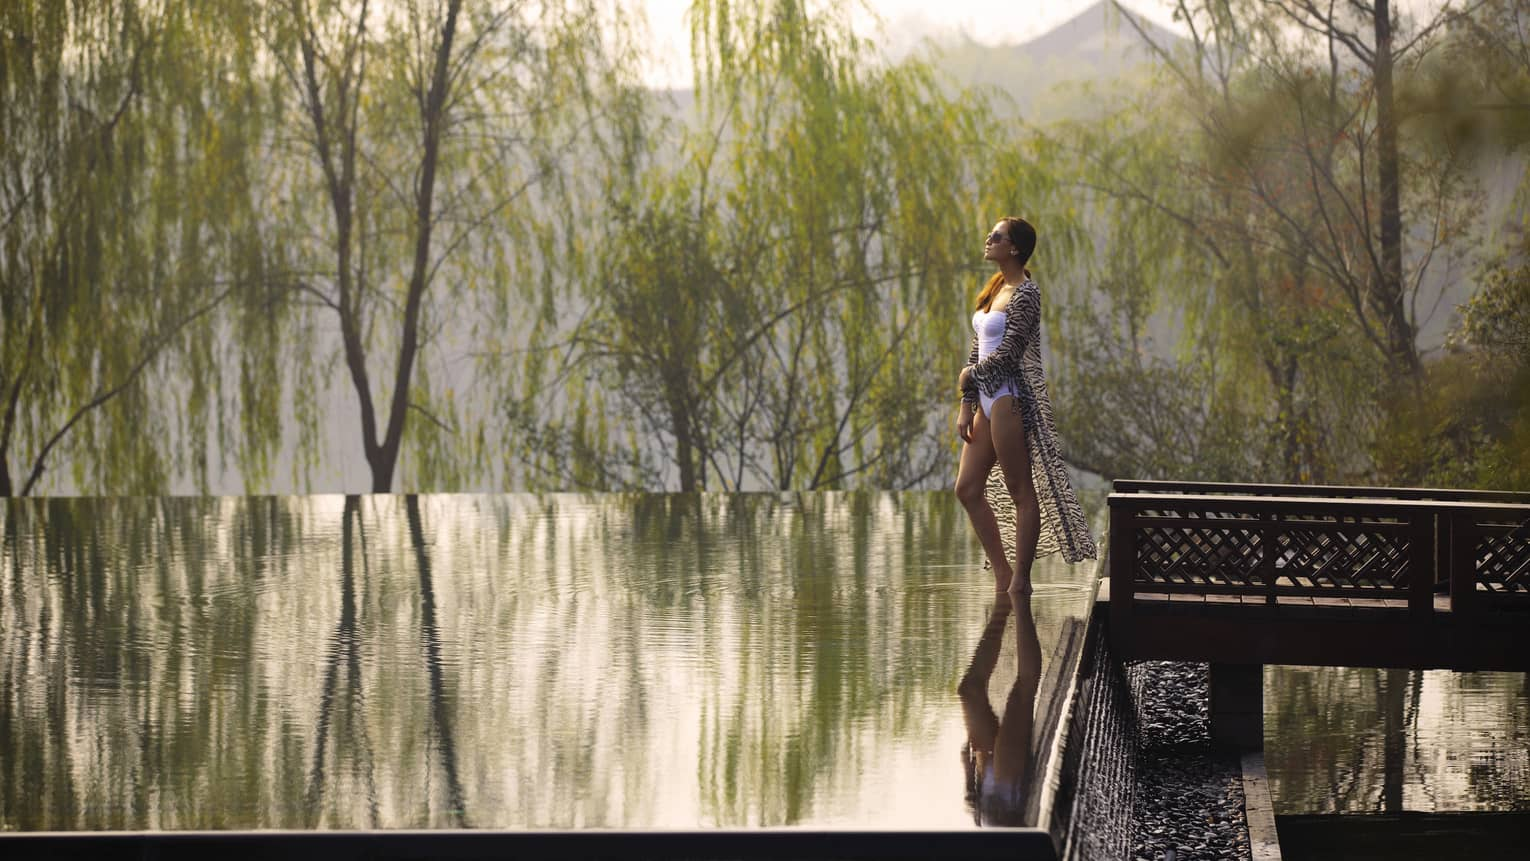 Woman wearing swimsuit, sheer cover walks by infinity swimming pool, water reflecting trees